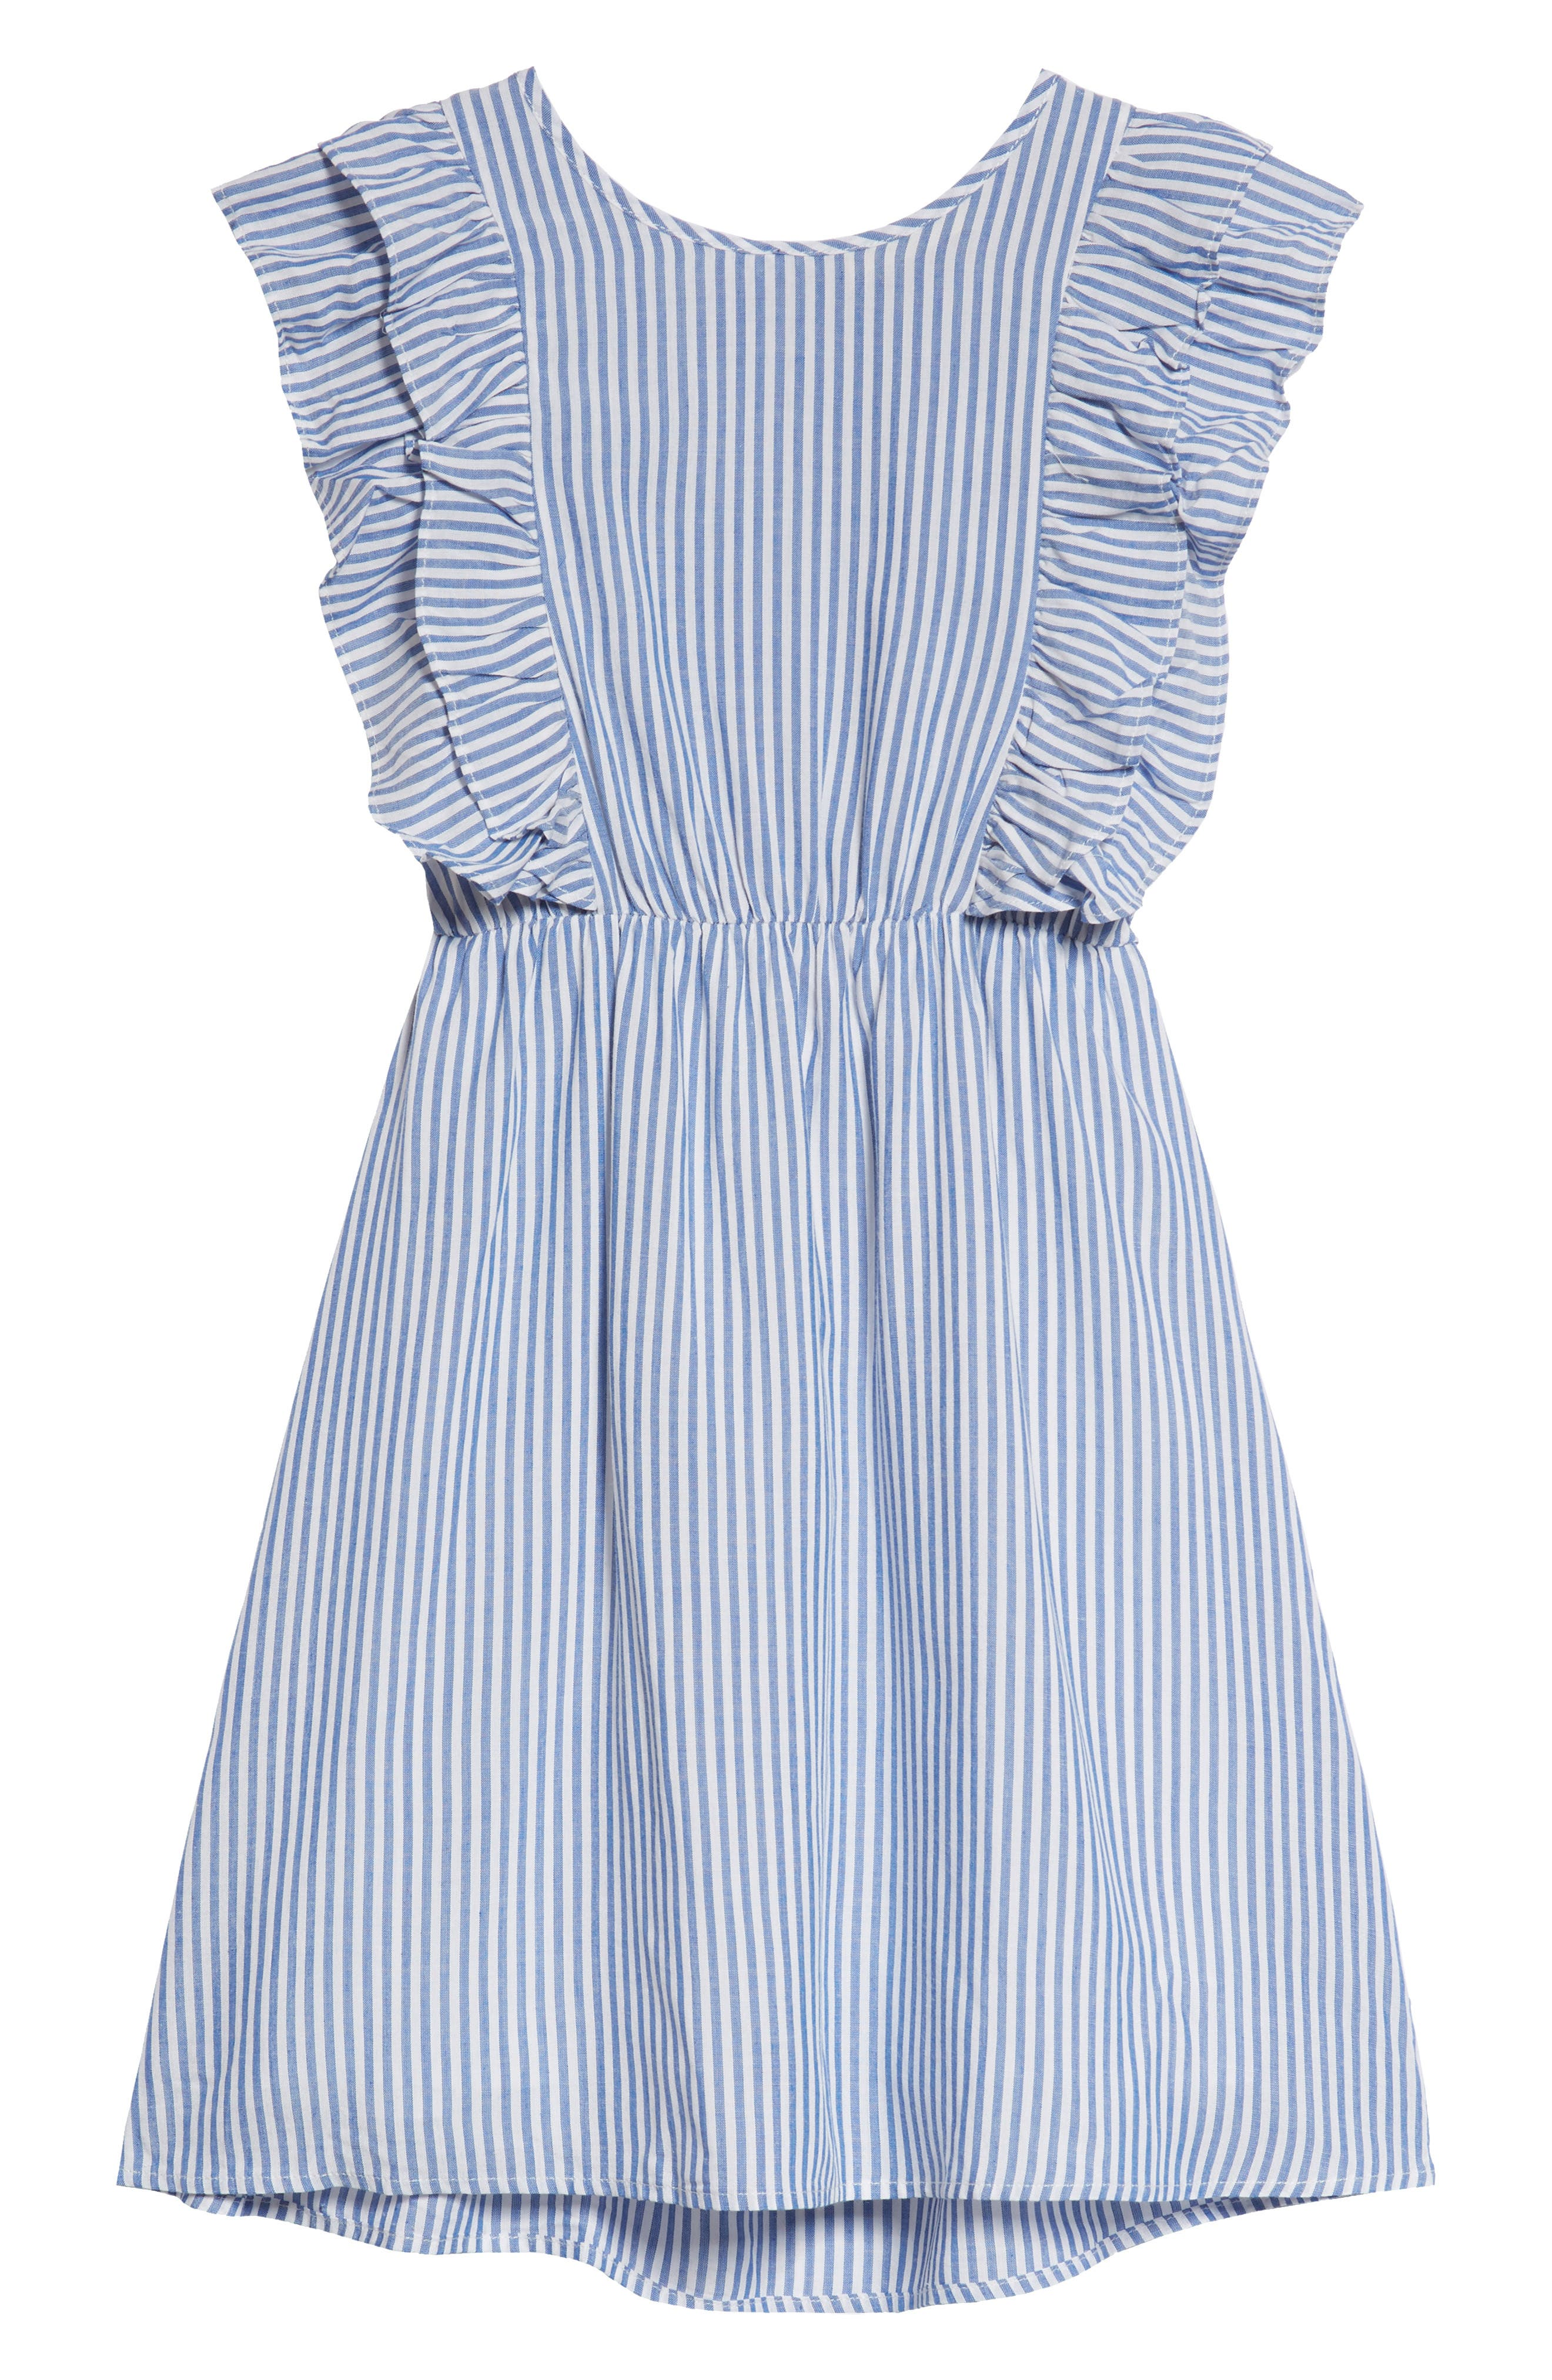 Poplin Stripe Ruffle Dress,                         Main,                         color,